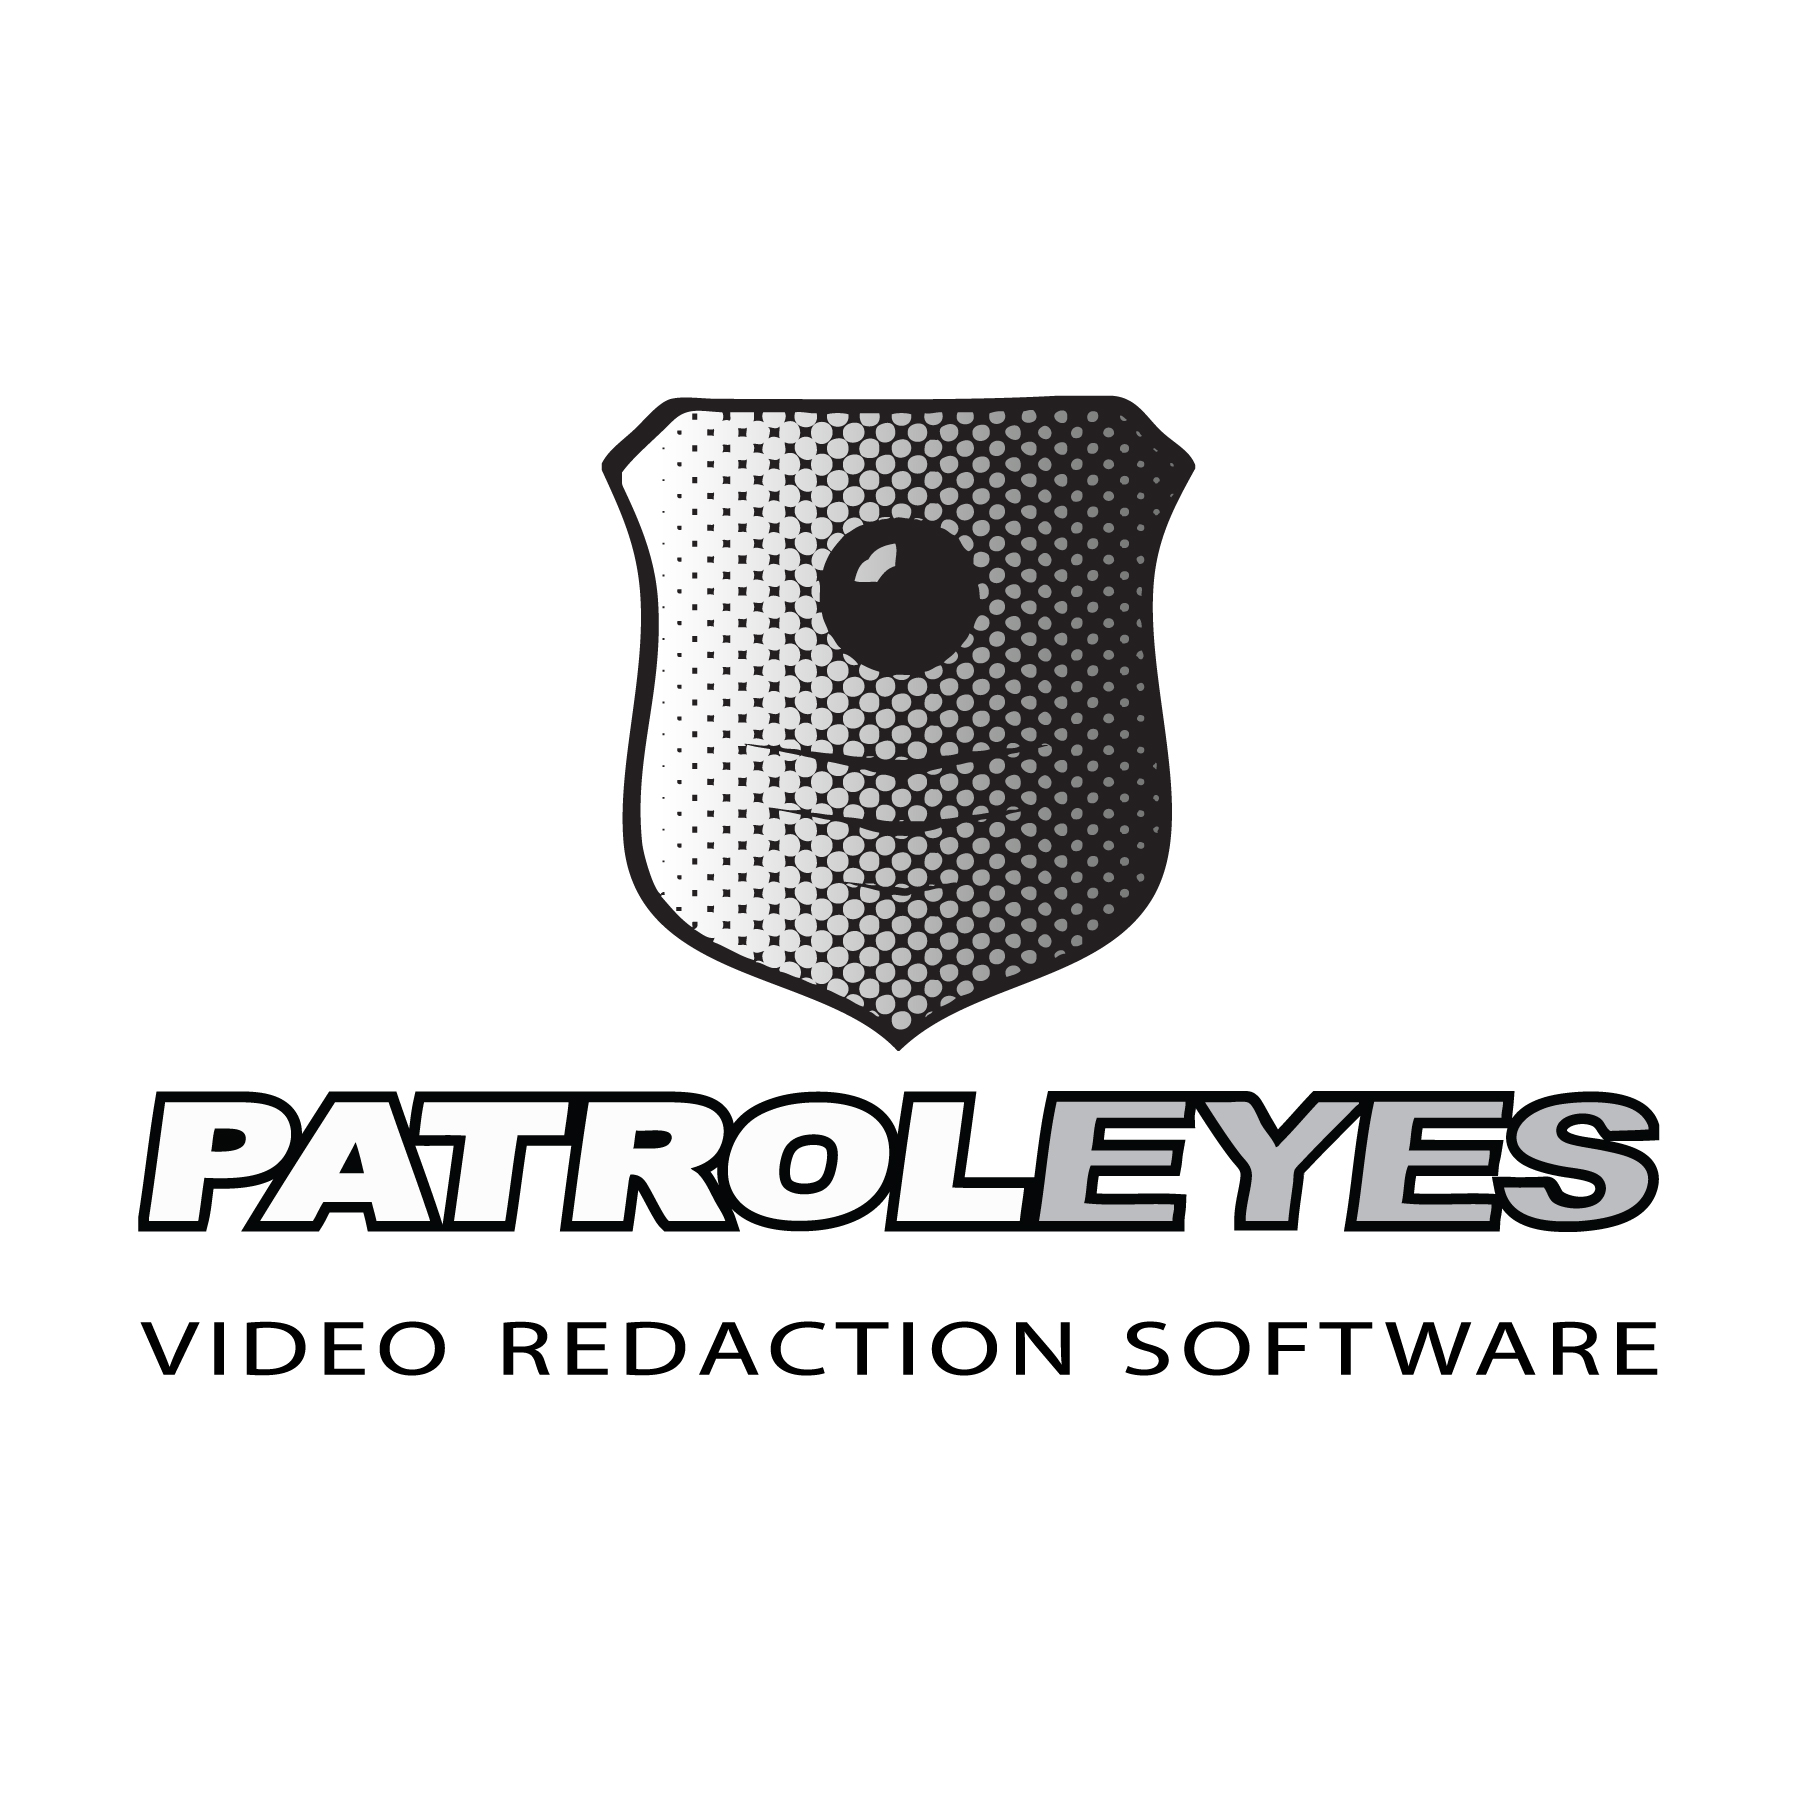 PatrolEyes Automatic Video Redaction Software